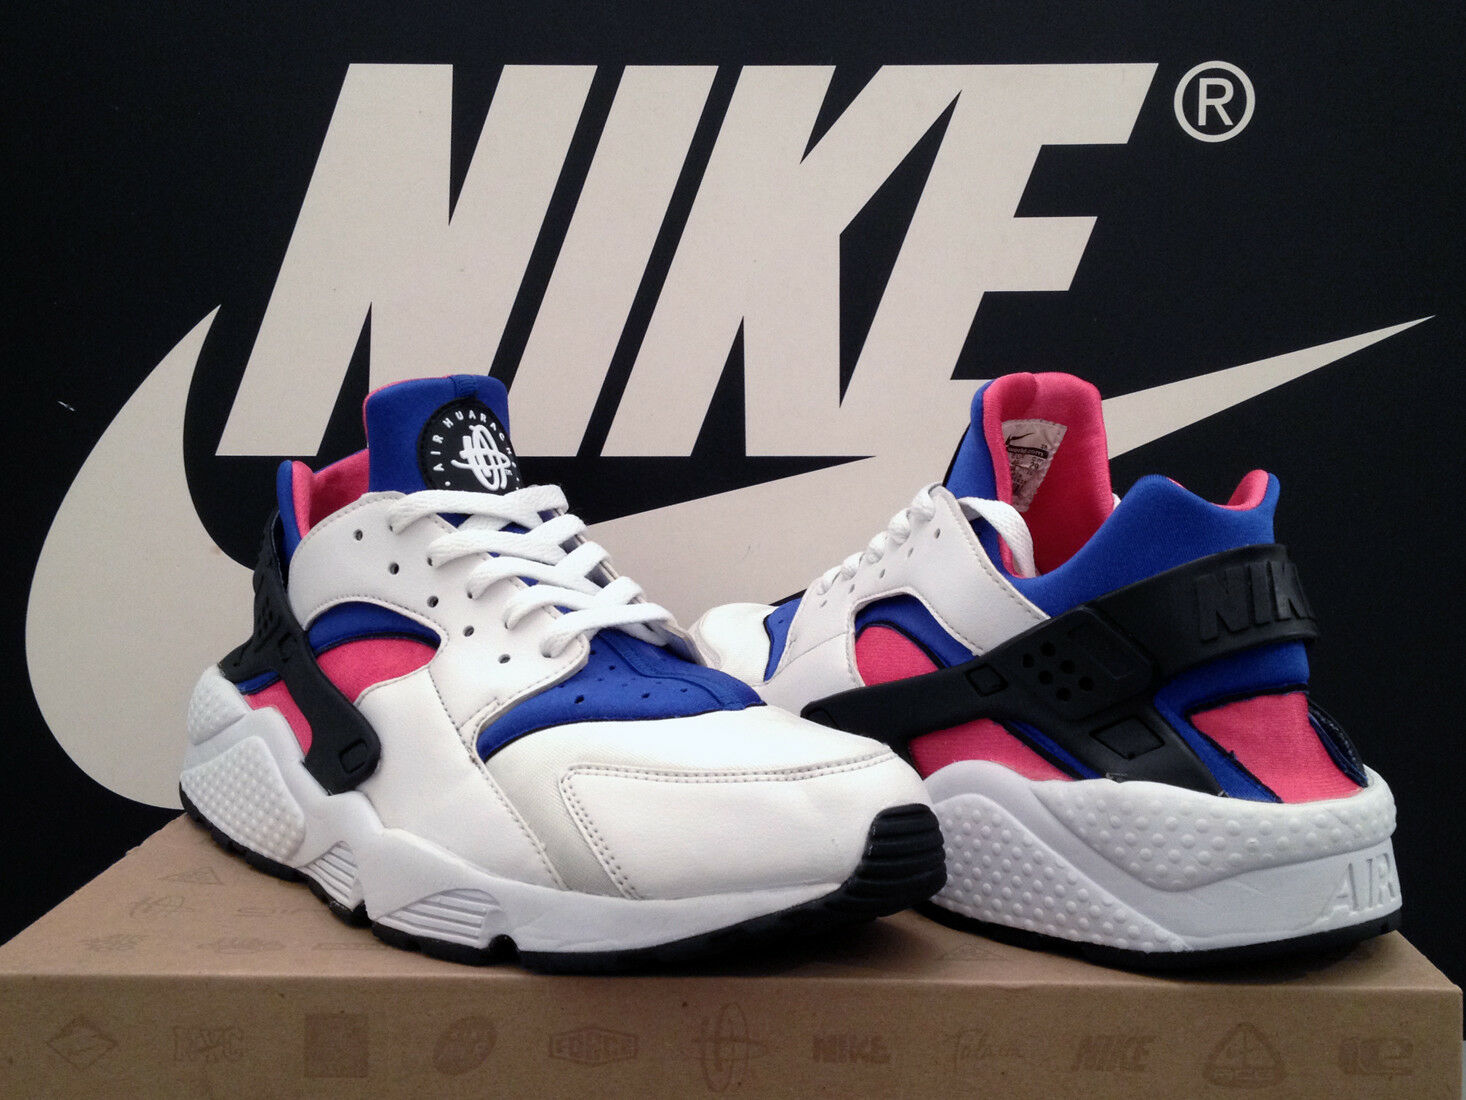 VTG 2013 NIKE AIR HUARACHE UK10 EU45 ROYAL OG 91 MAX 1 90 BW 95 97 98 TN OG RARE